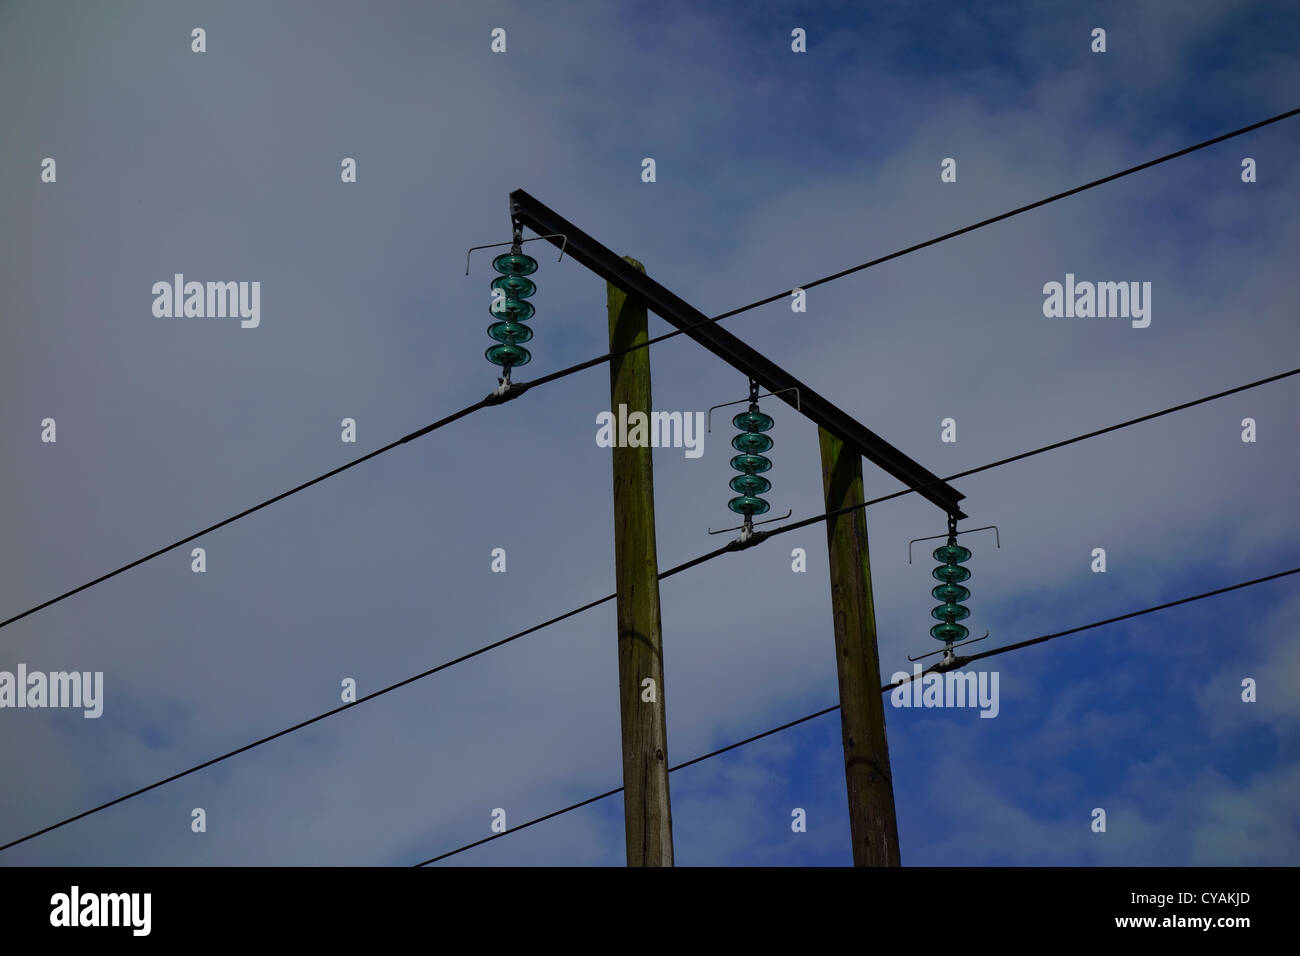 power lines - Stock Image